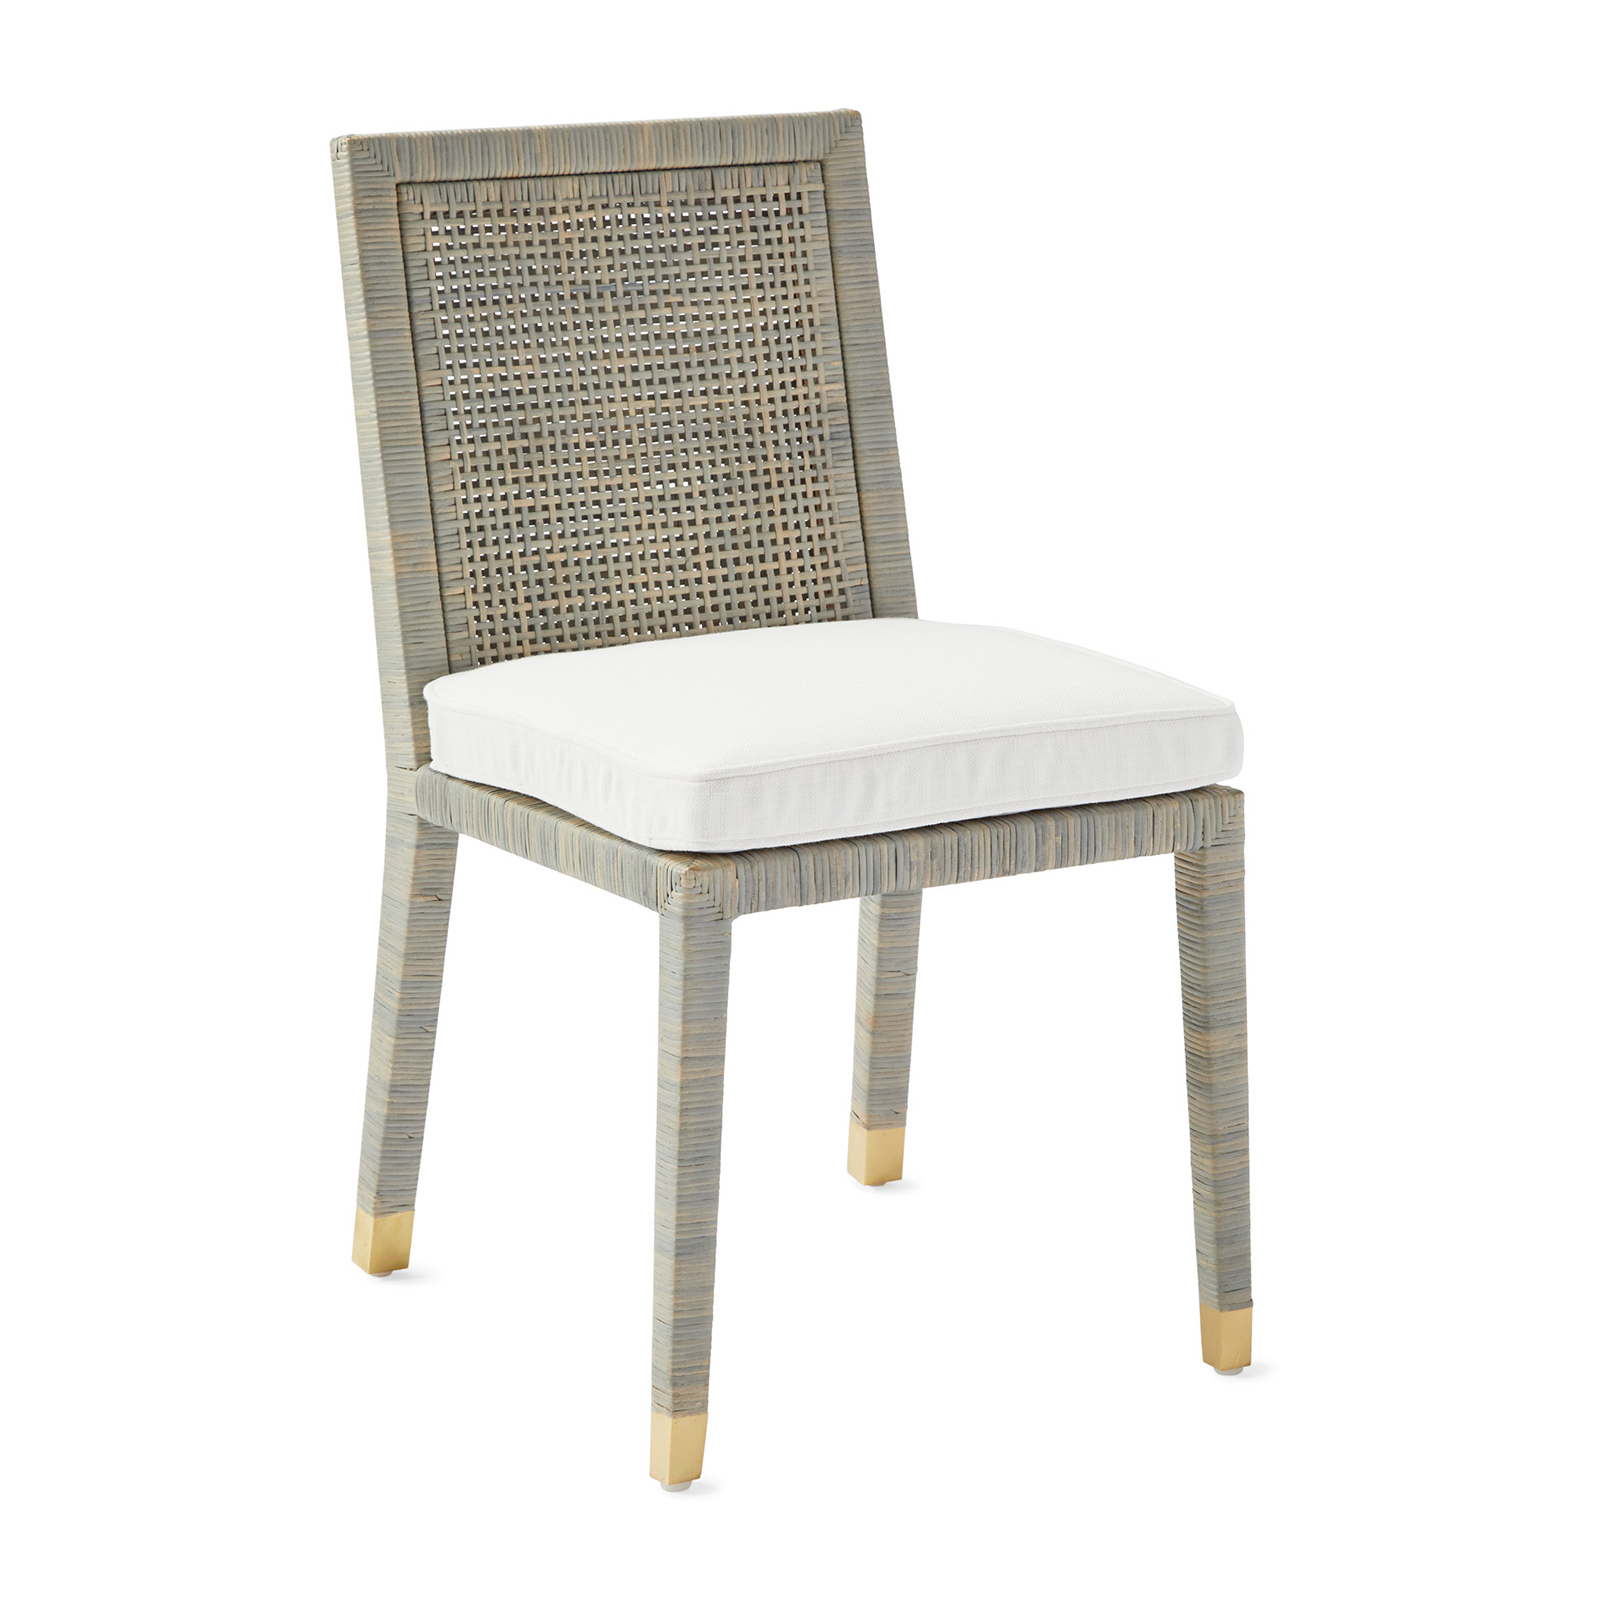 Furn_Balboa_Dining_Chair_Mist_White_Cushion_Angle_MV_0206_Crop_SH.jpg